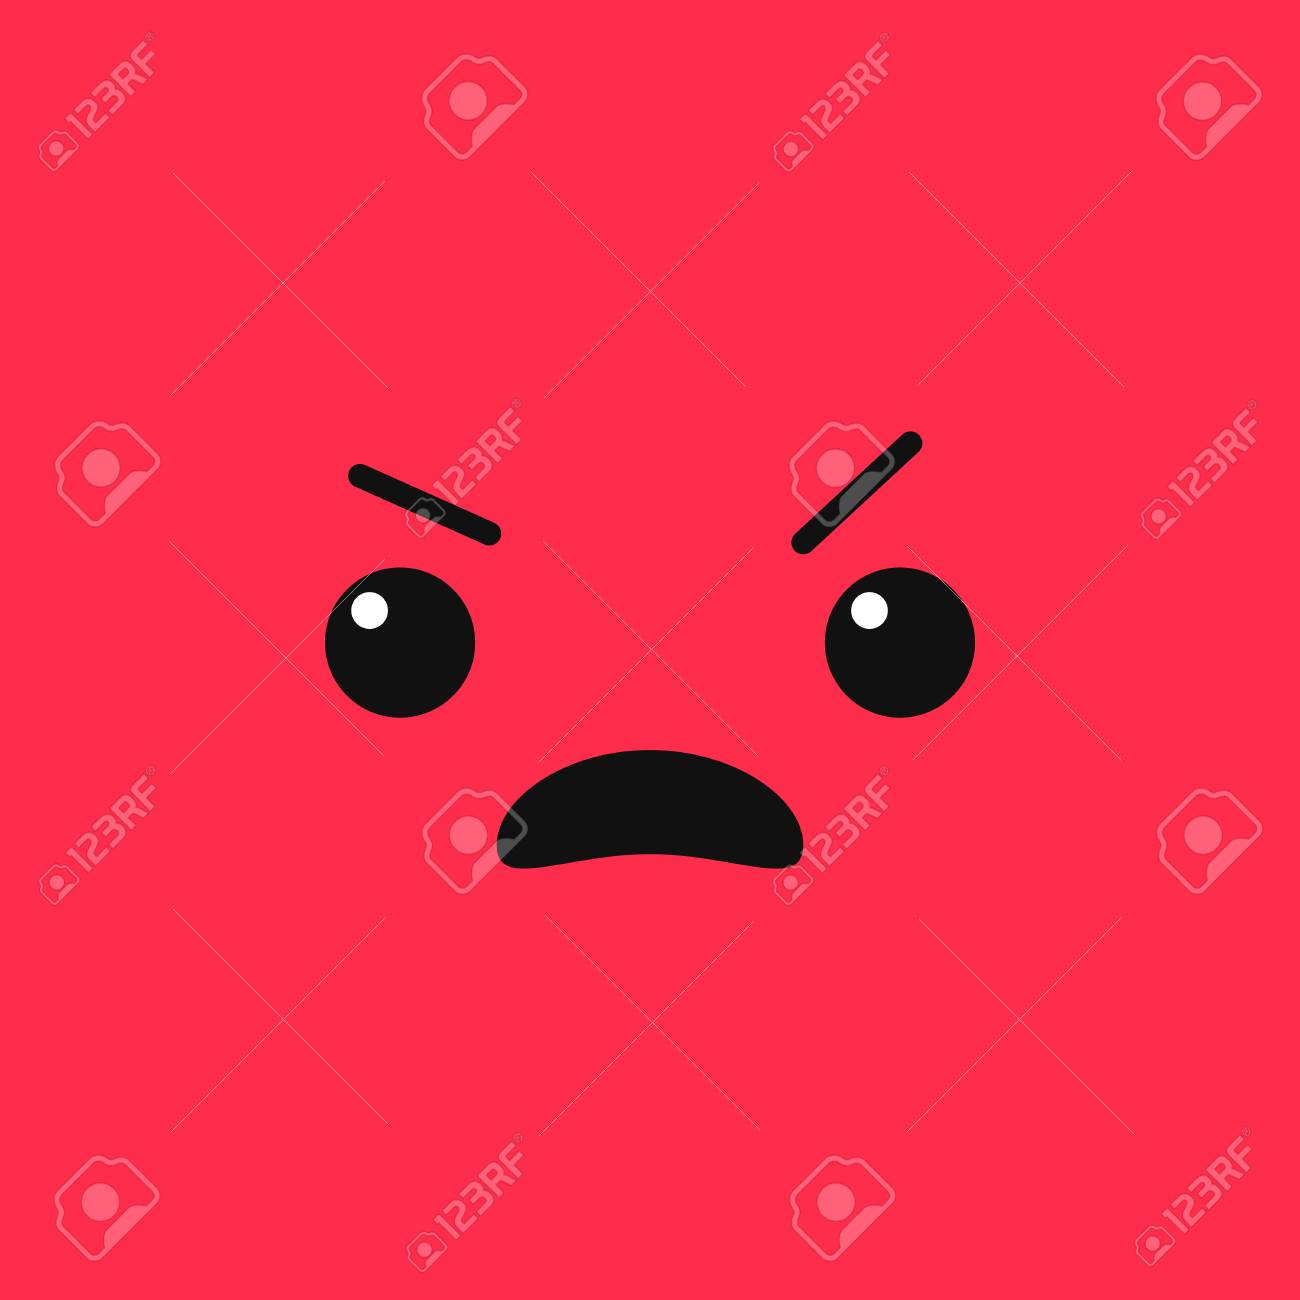 Vector evil angry mad emoji face on stylish red background